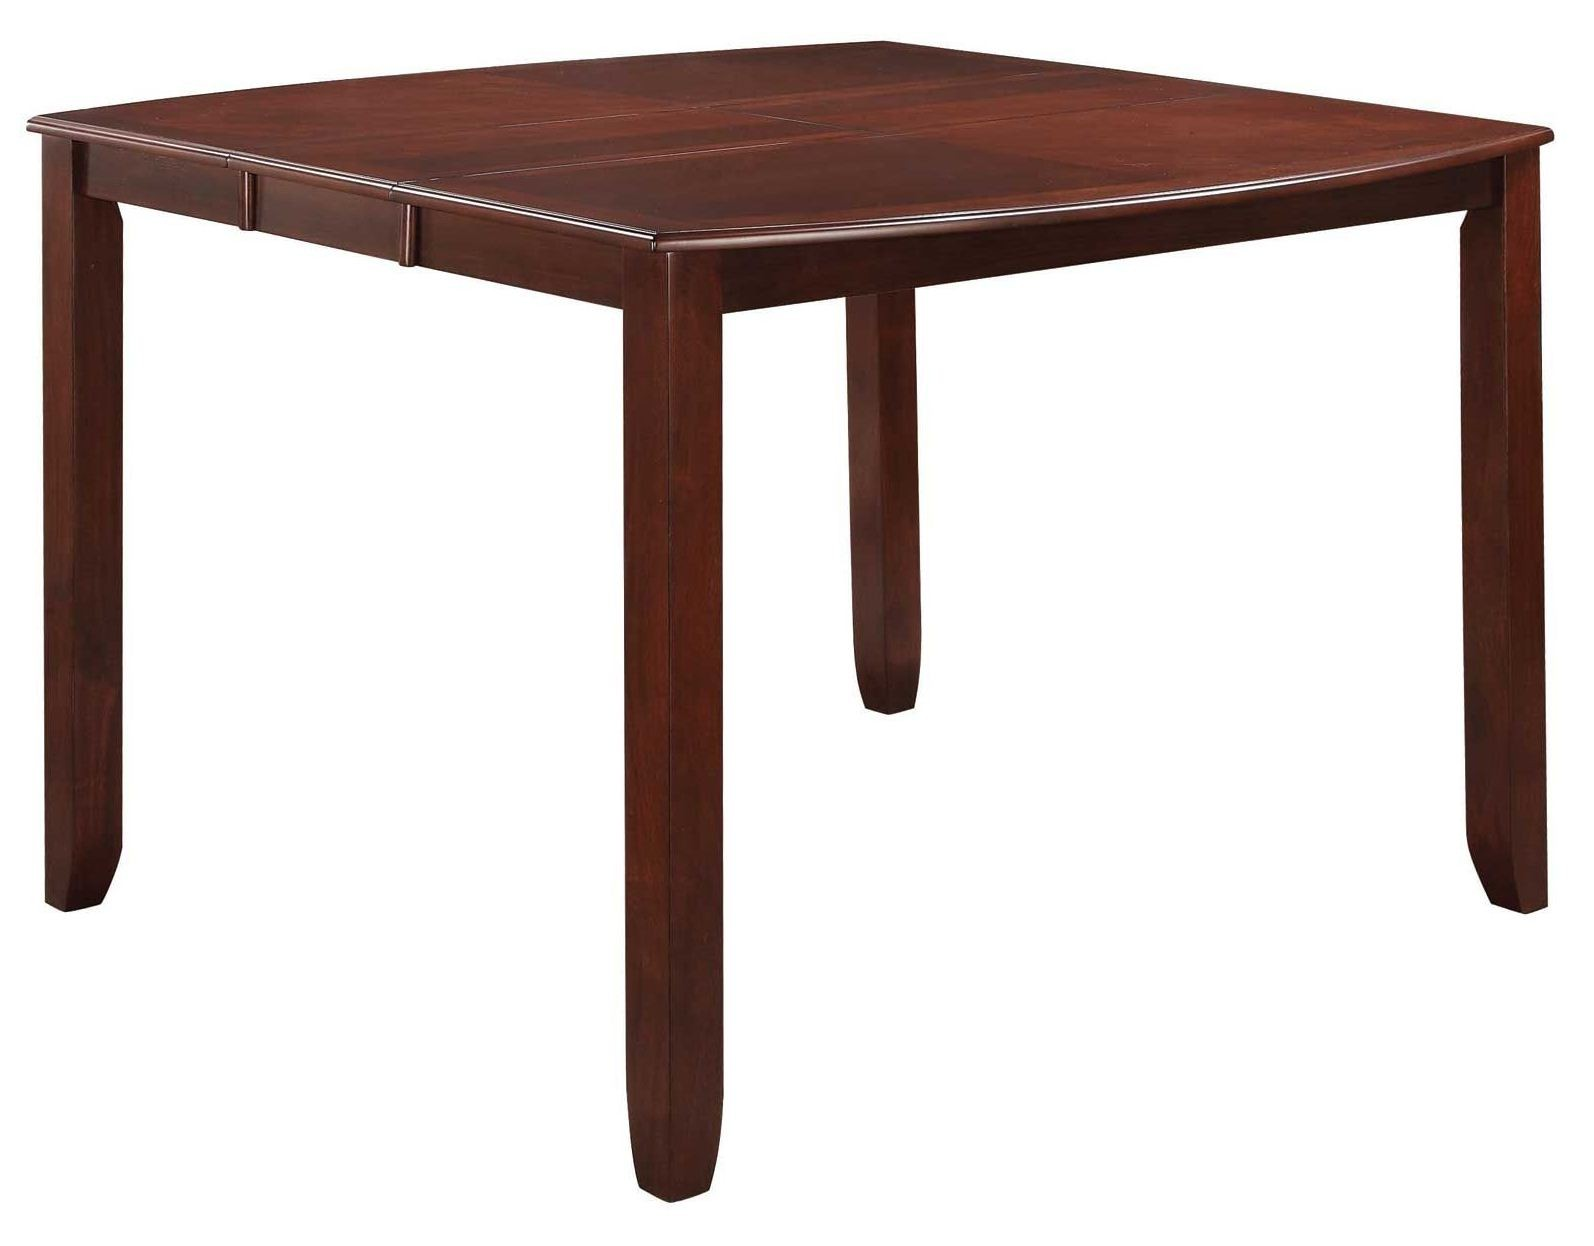 Dupree extendable square counter height table from coaster for Square counter height table